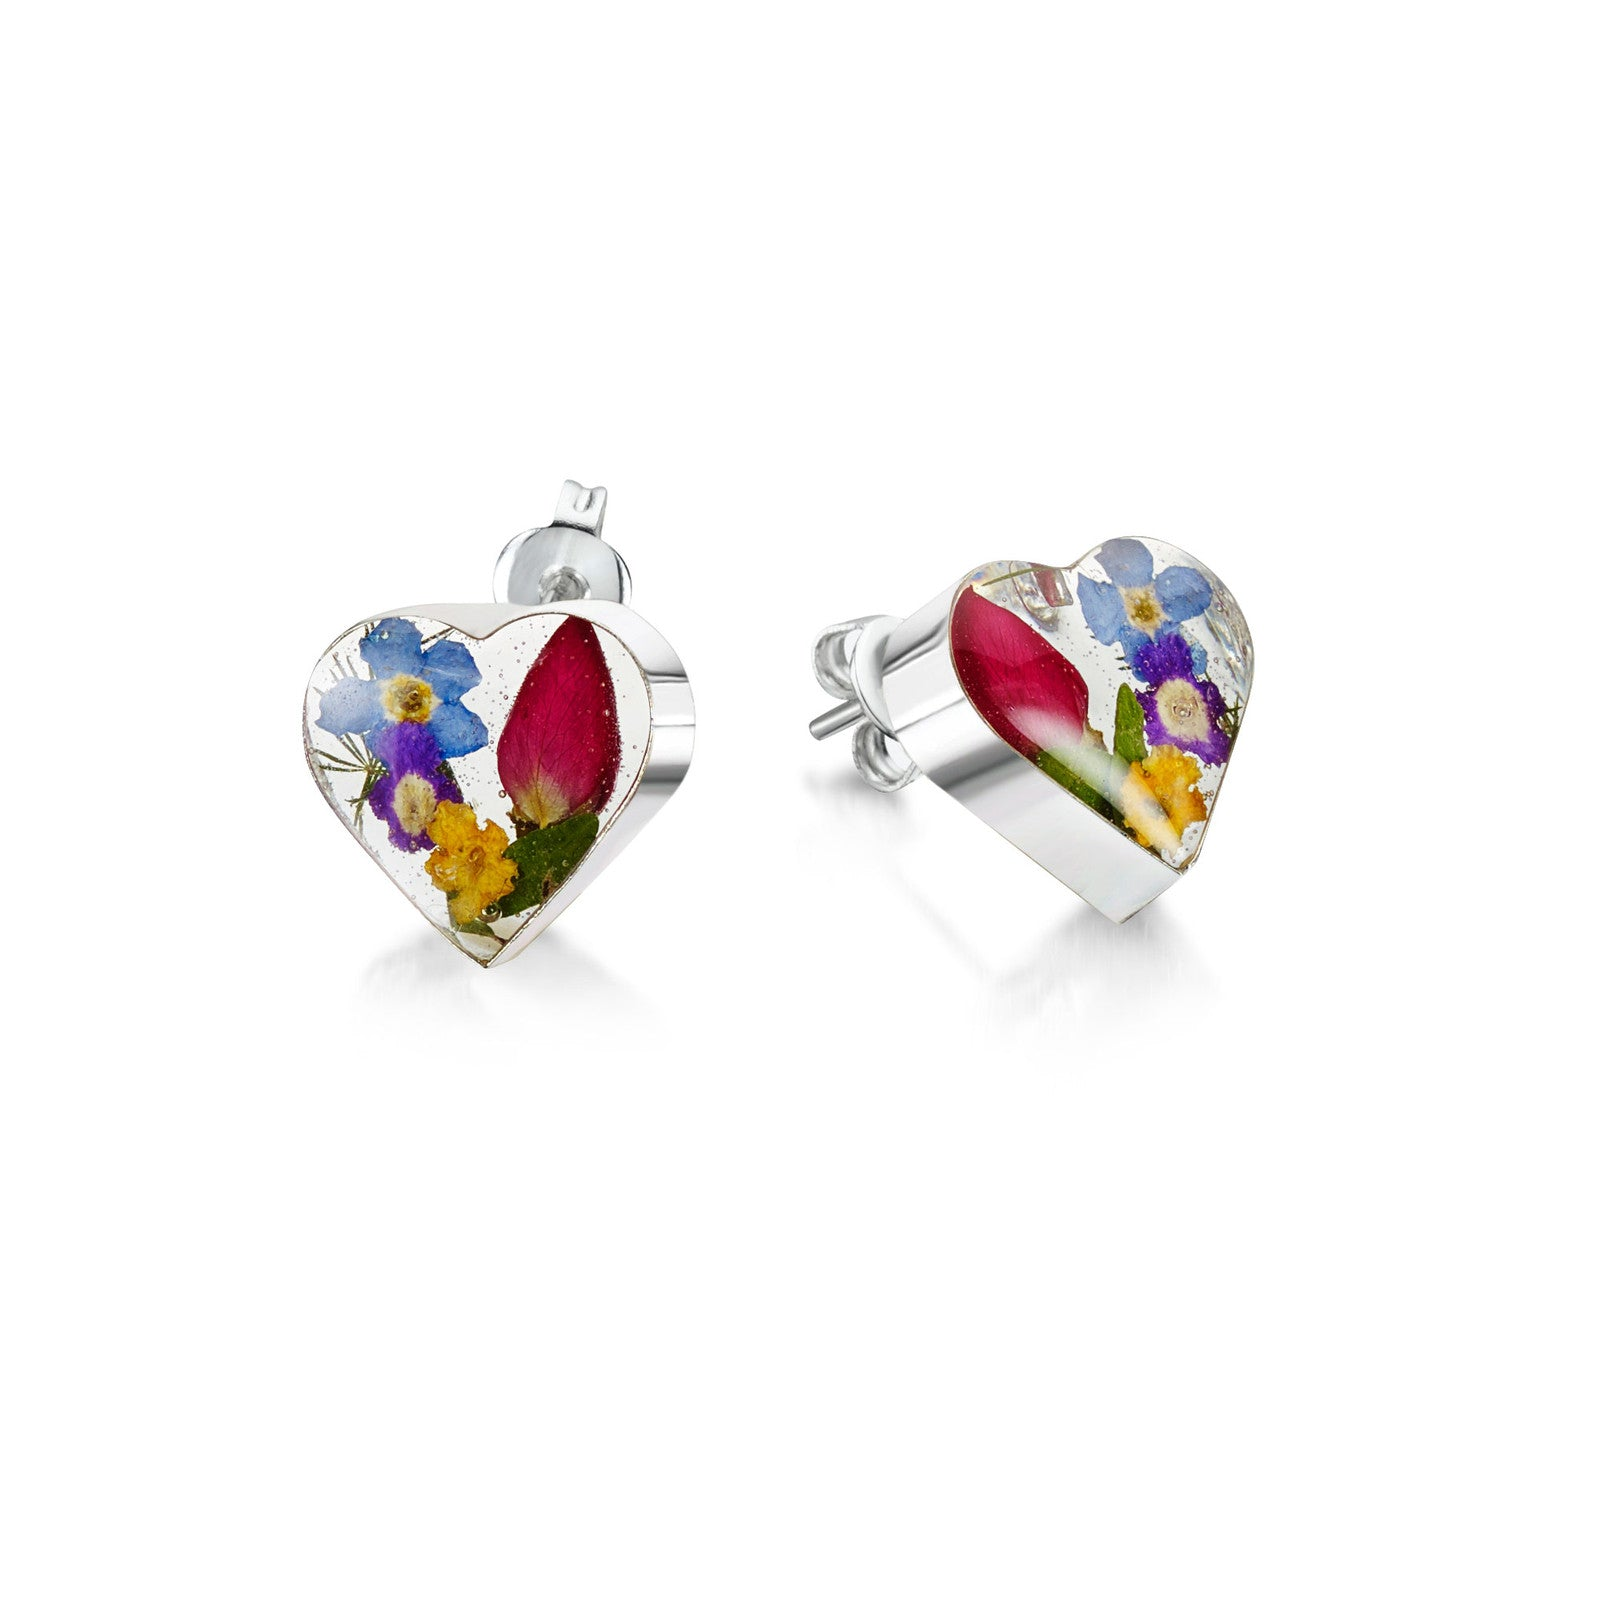 Silver stud Earrings - Mixed flowers + yellow - Small heart